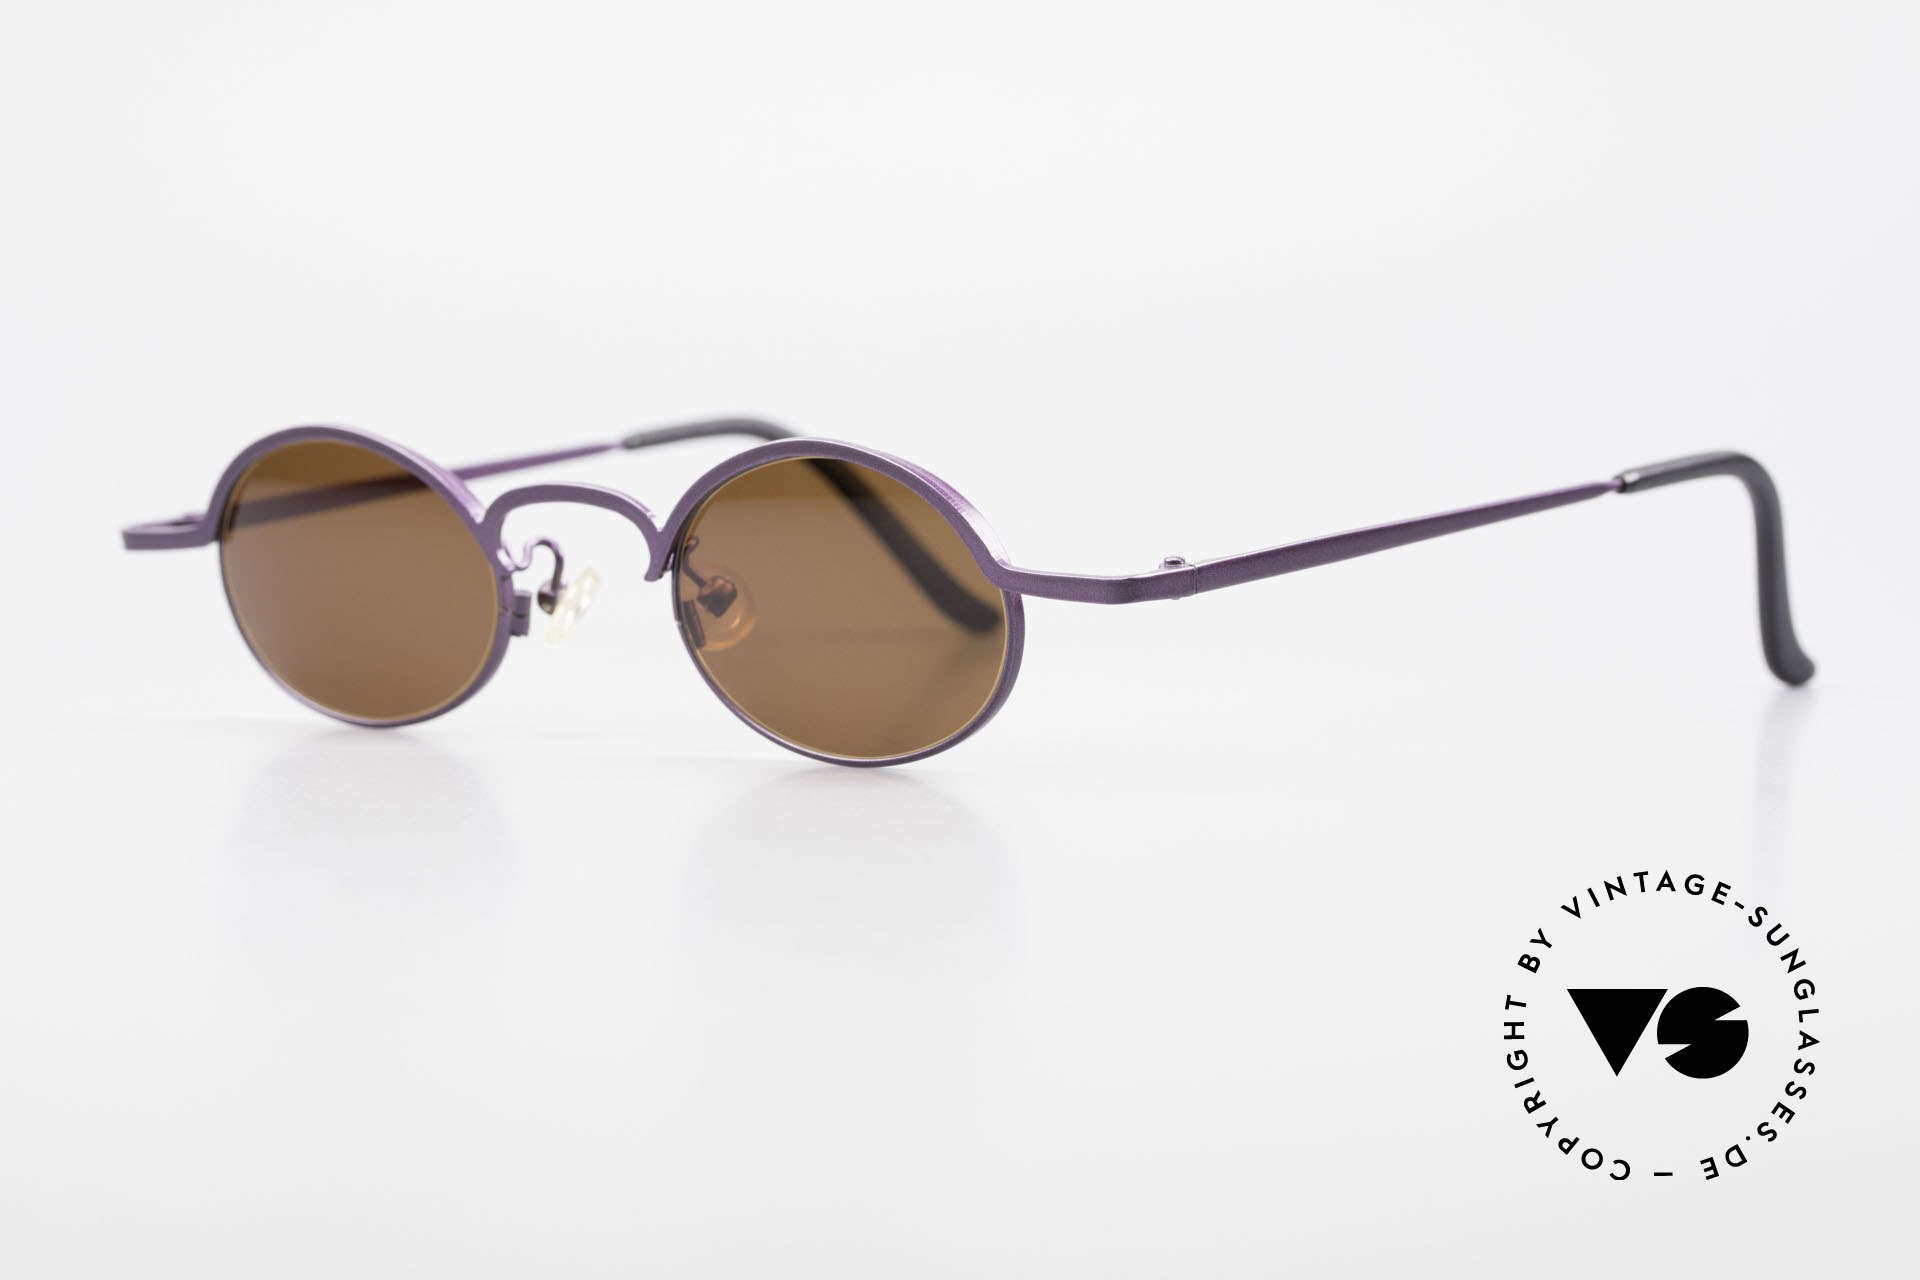 Theo Belgium San 90's Oval Designer Sunglasses, made for the avant-garde, individualists, trend-setters, Made for Women